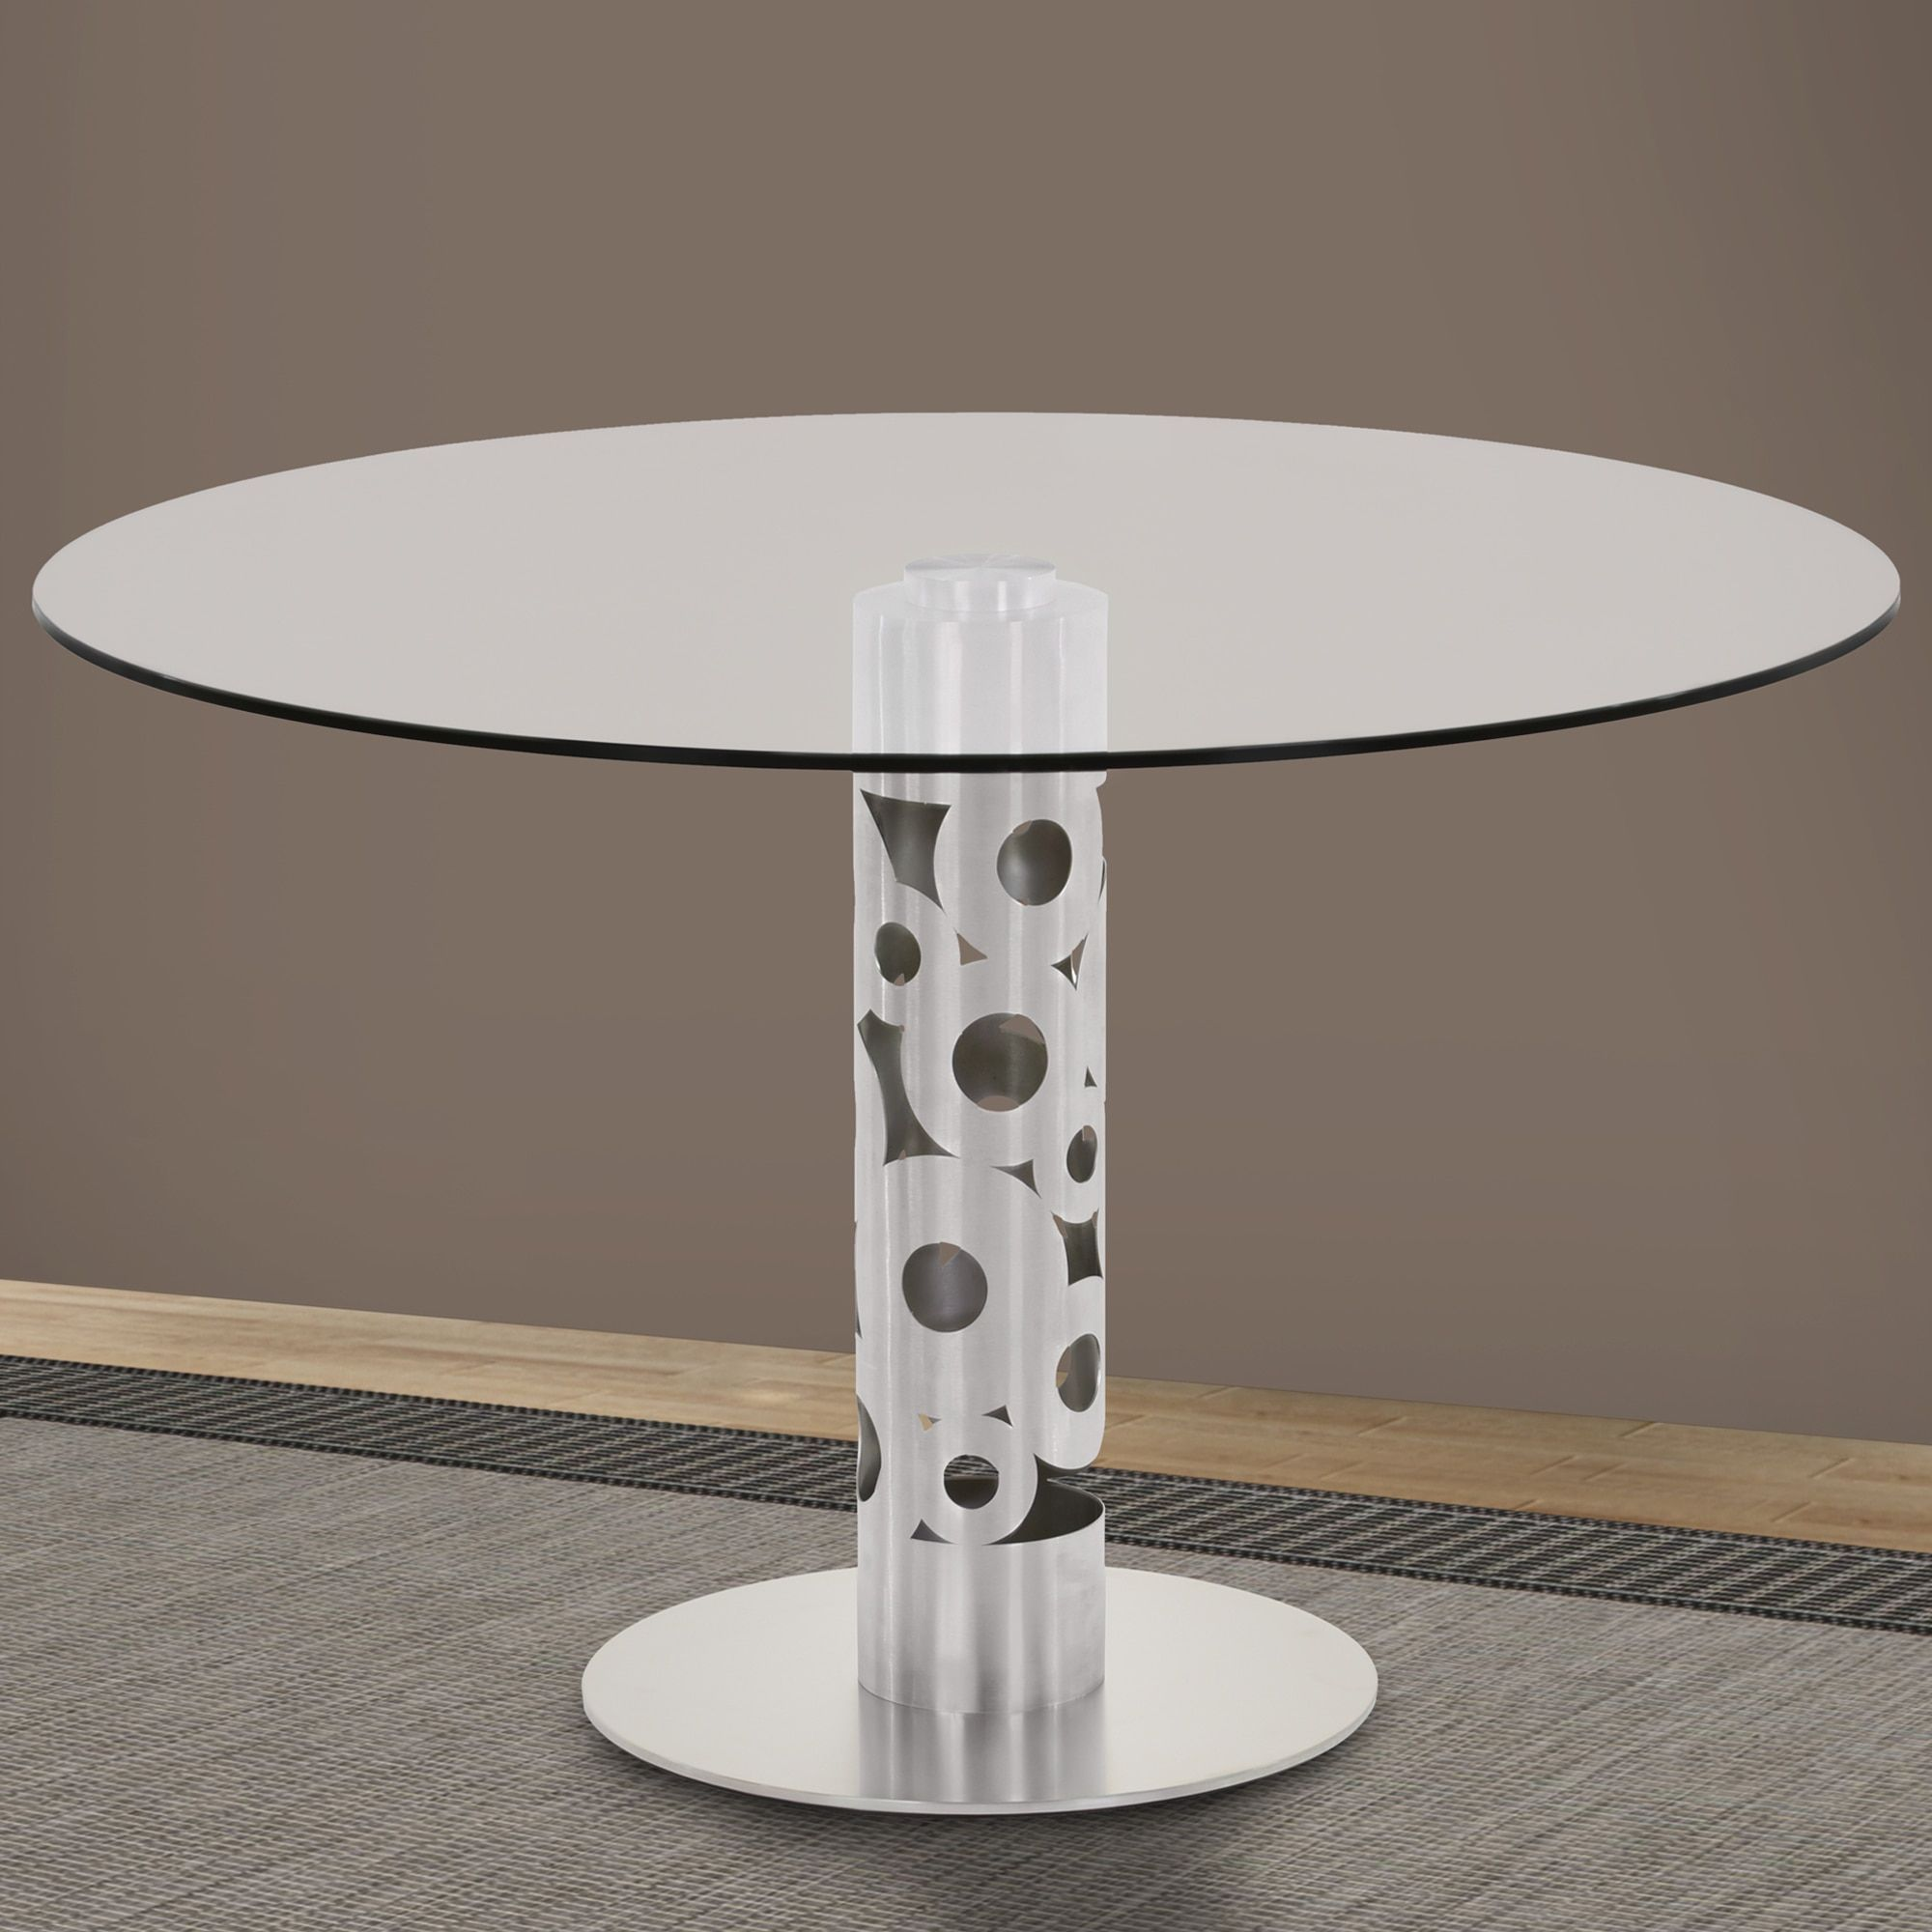 Armen Living Berlin Round Dining Table In Brushed Stainless Steel